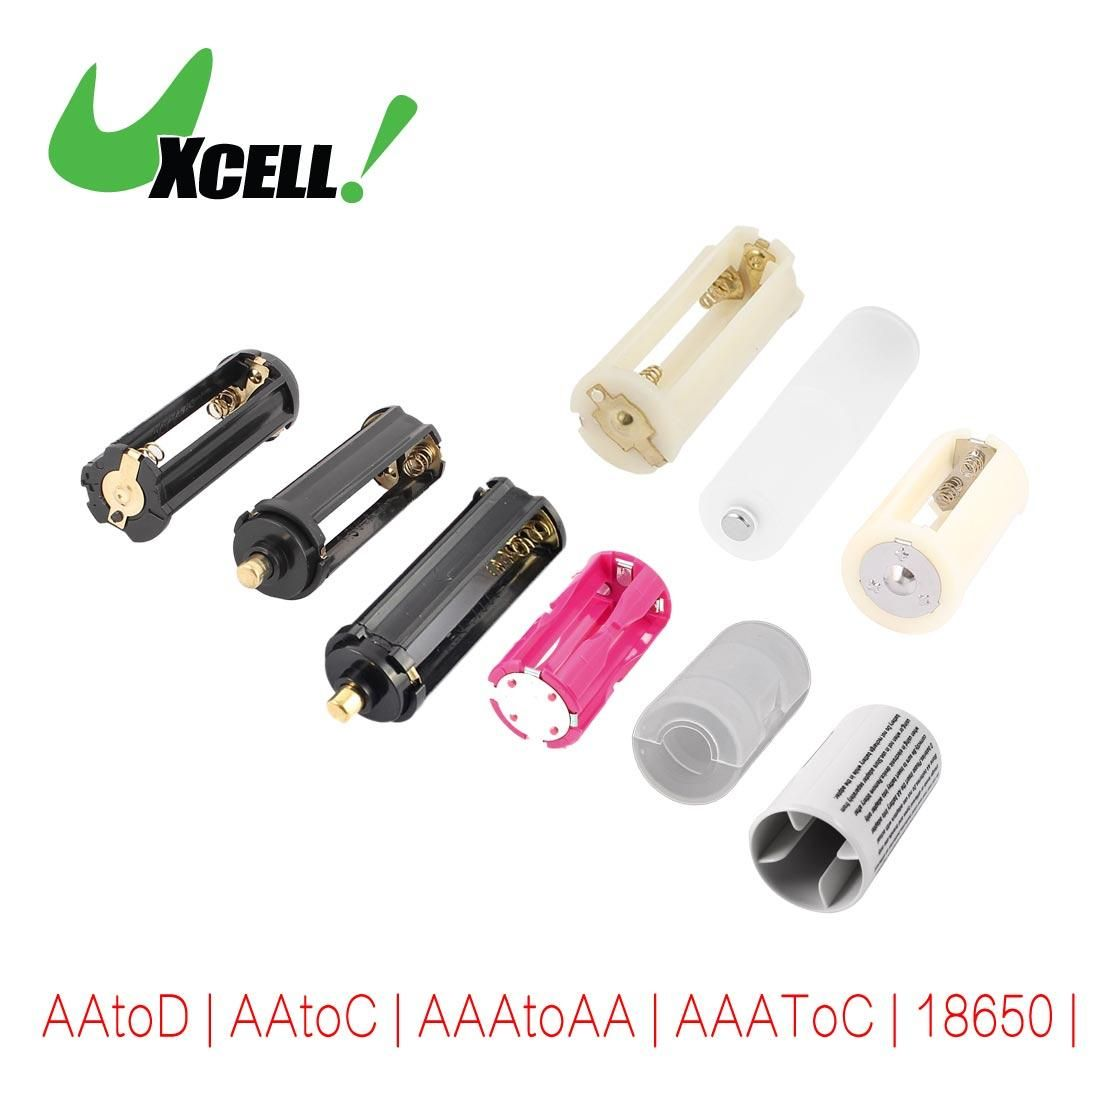 Visit To Buy Uxcell 3 Pcs Parallel Aa Aaa Battery Adapter Converter Case Holder For 18650 2xaatod 3xaaa 3x Battery Adapter Aaa Batteries Stuff To Buy